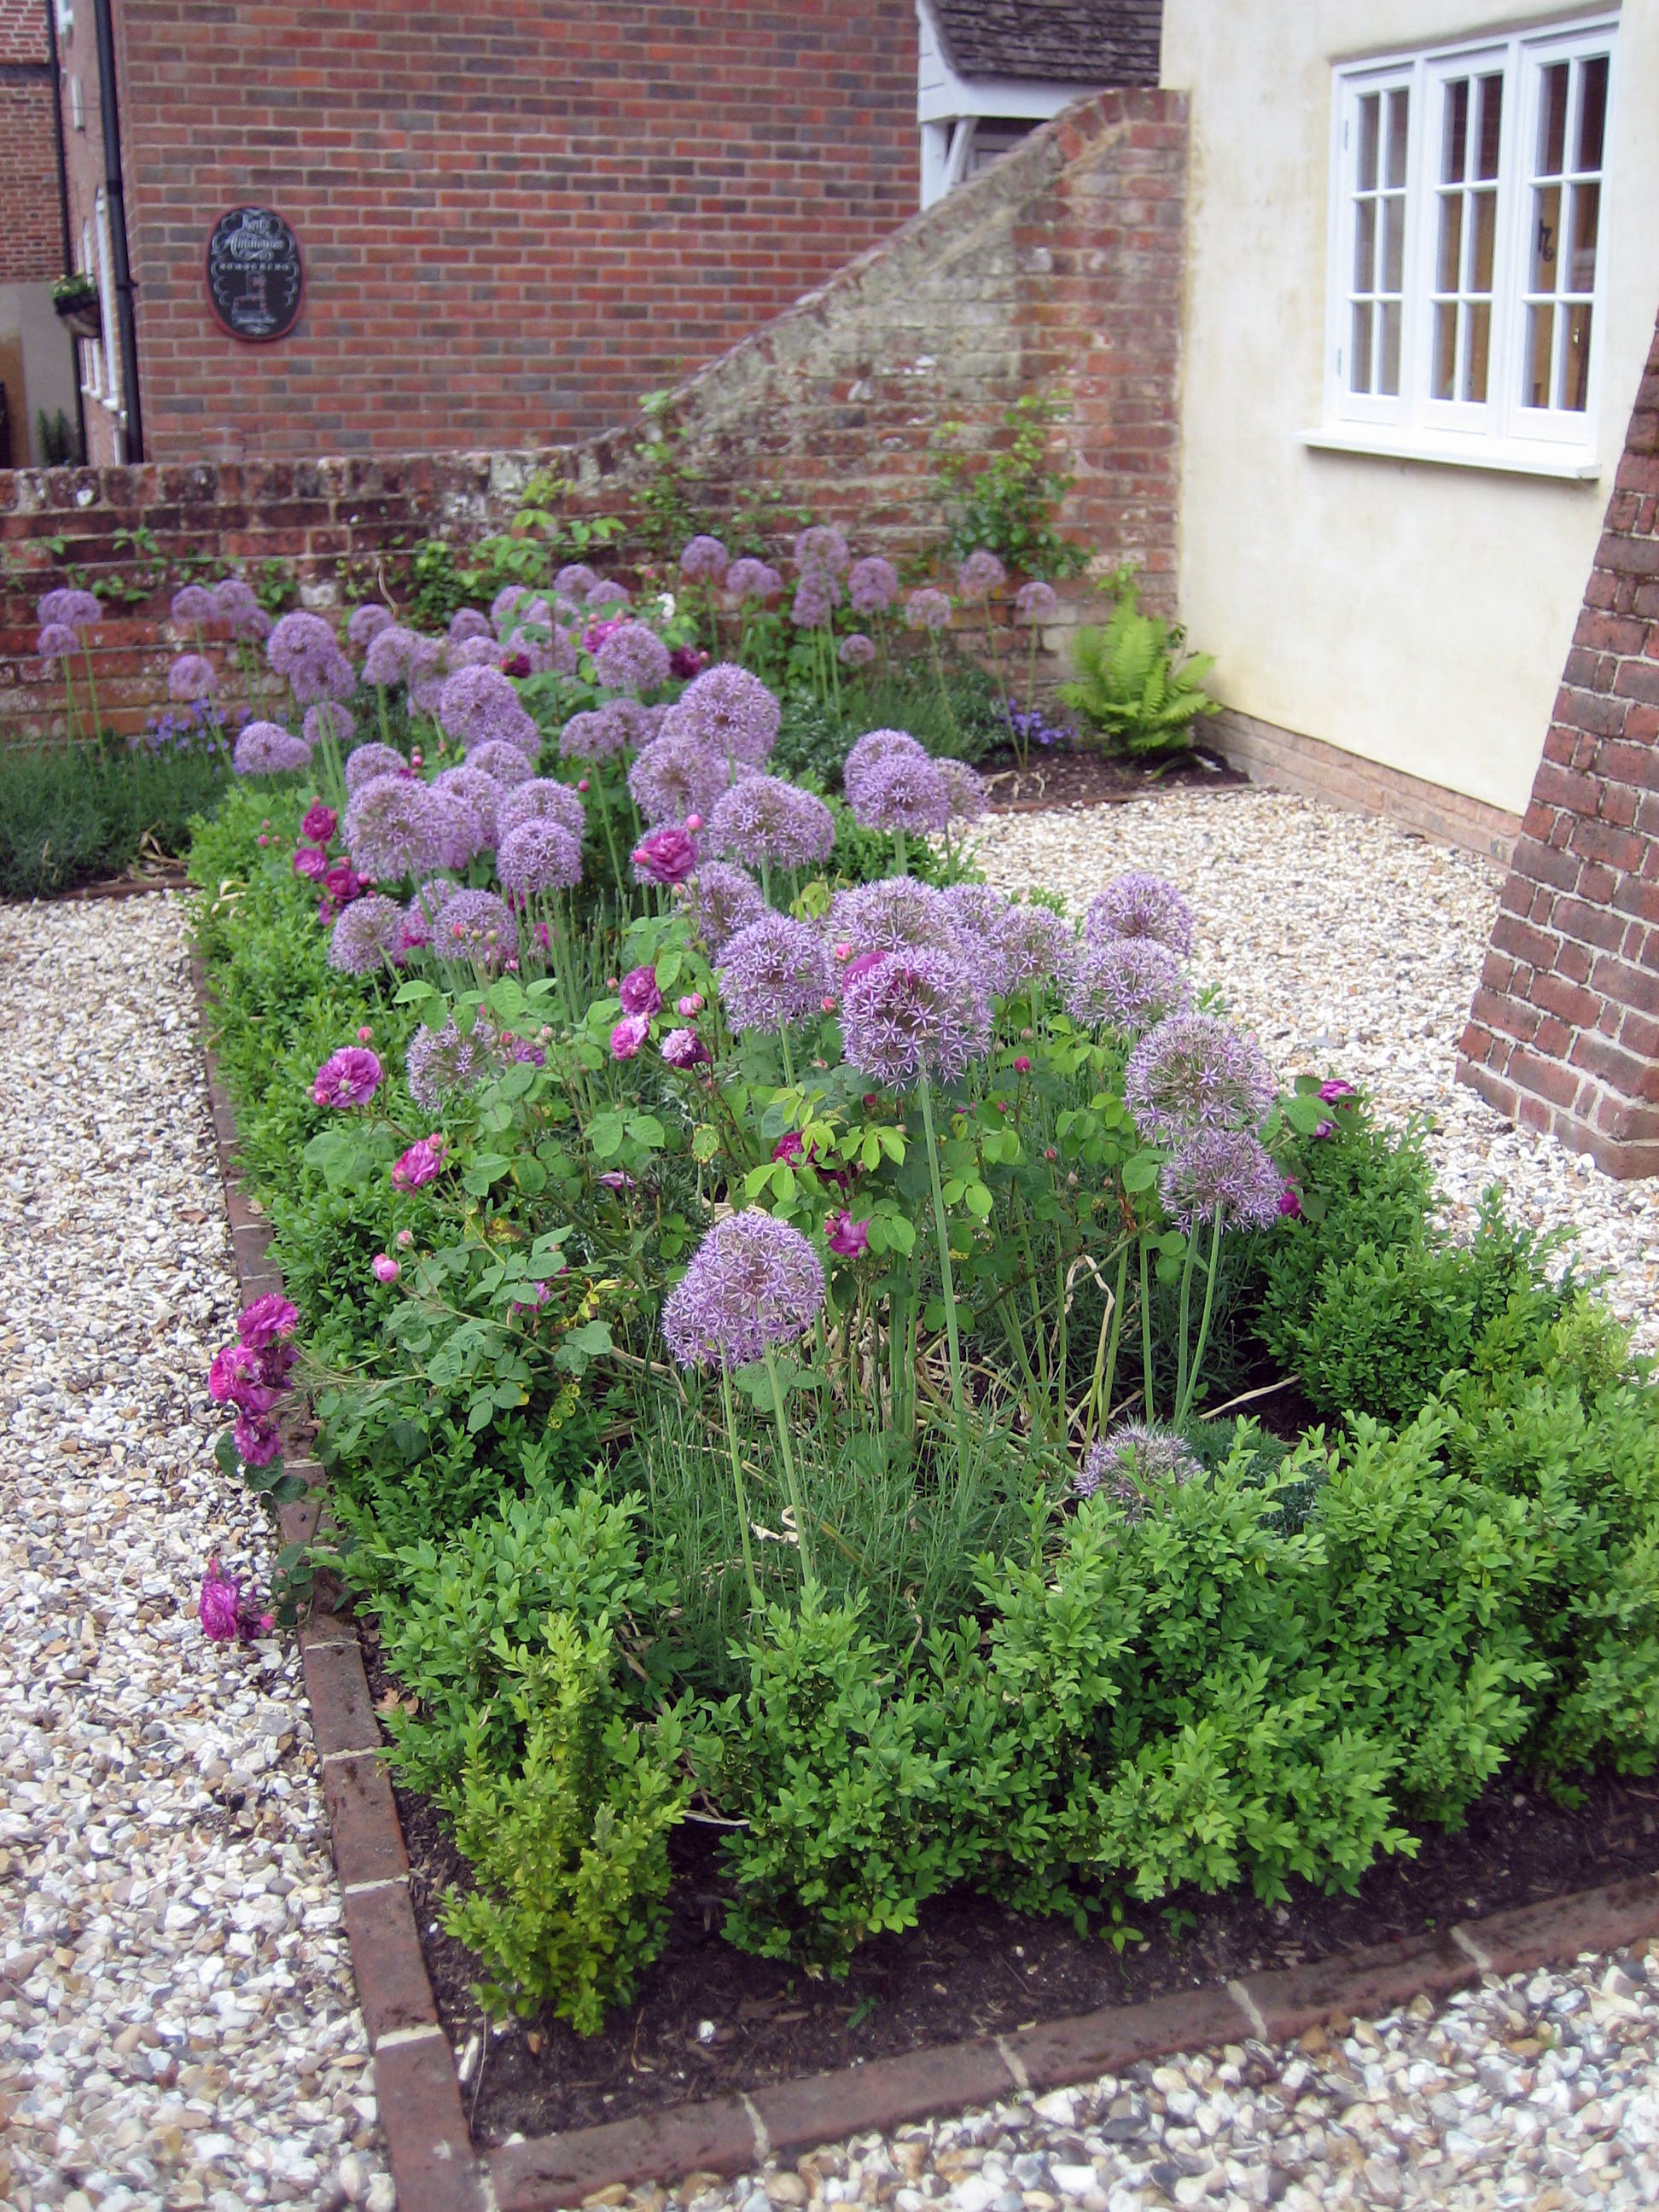 Cottage garden romsey hampshire amy perkins garden for Cottage garden designs photos